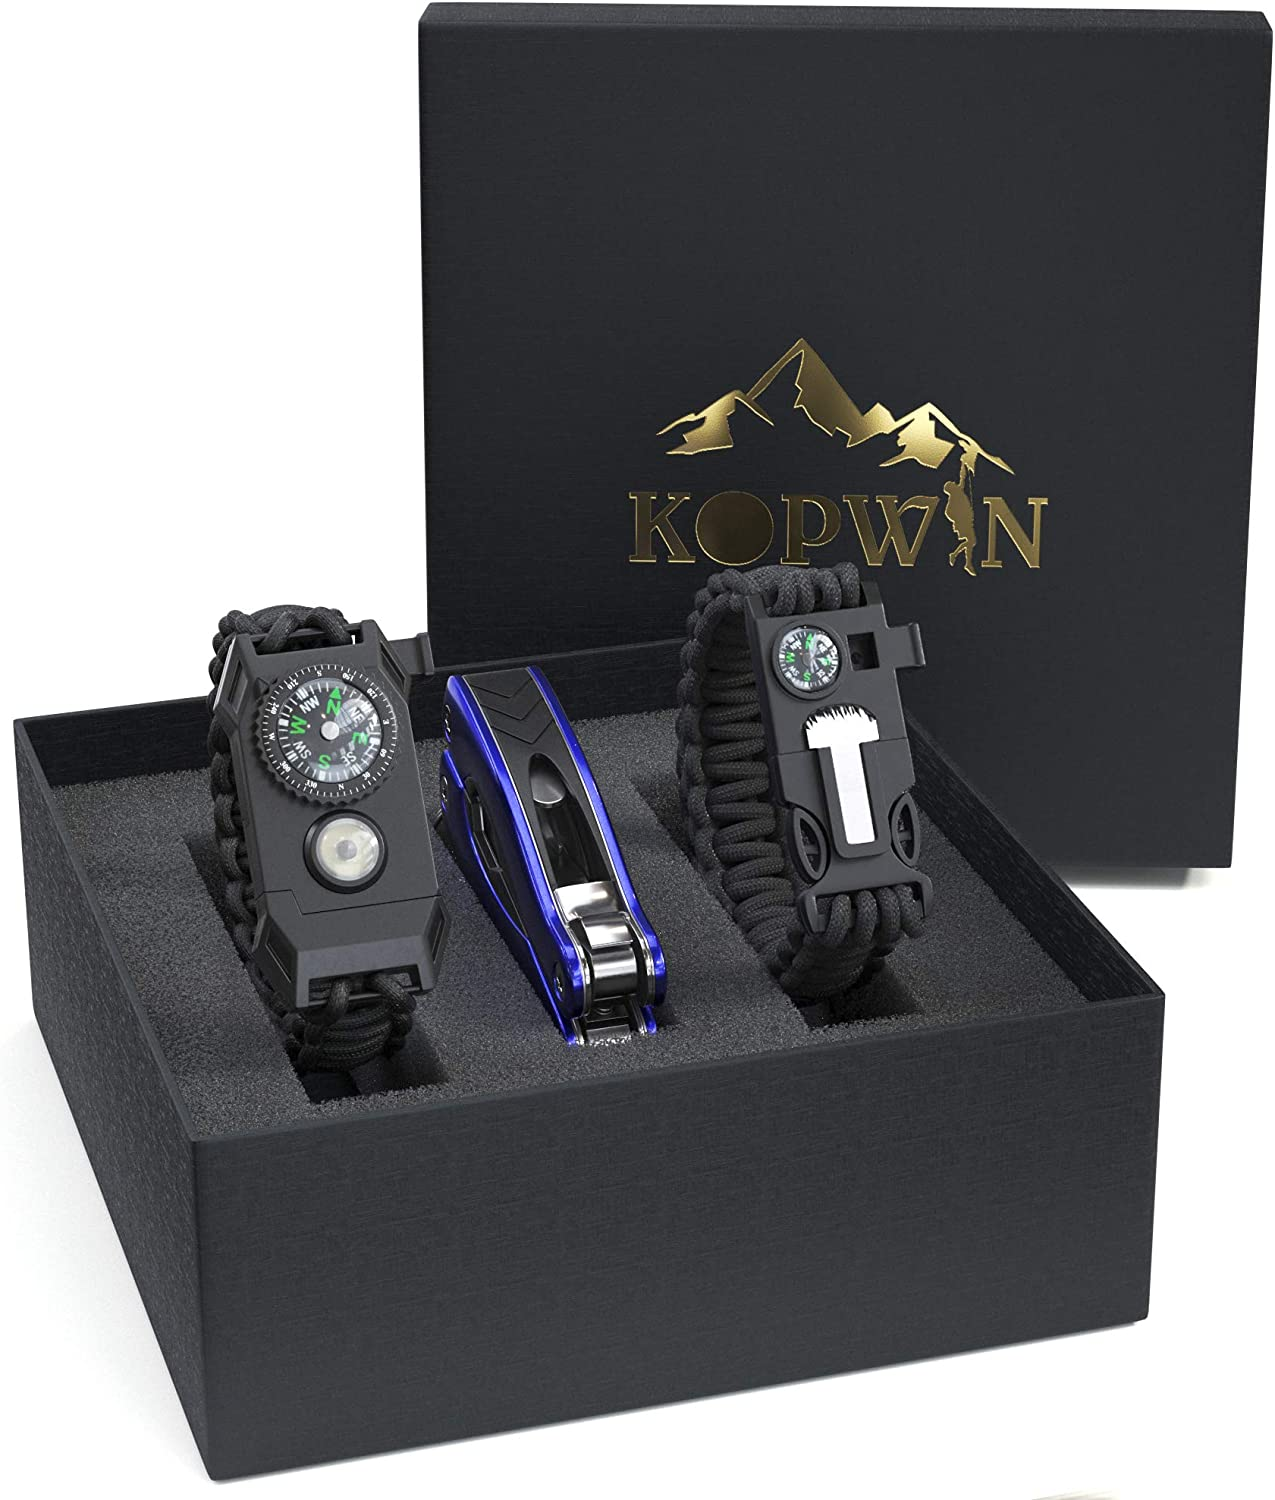 Kopwin Paracord Survival Bracelet Set